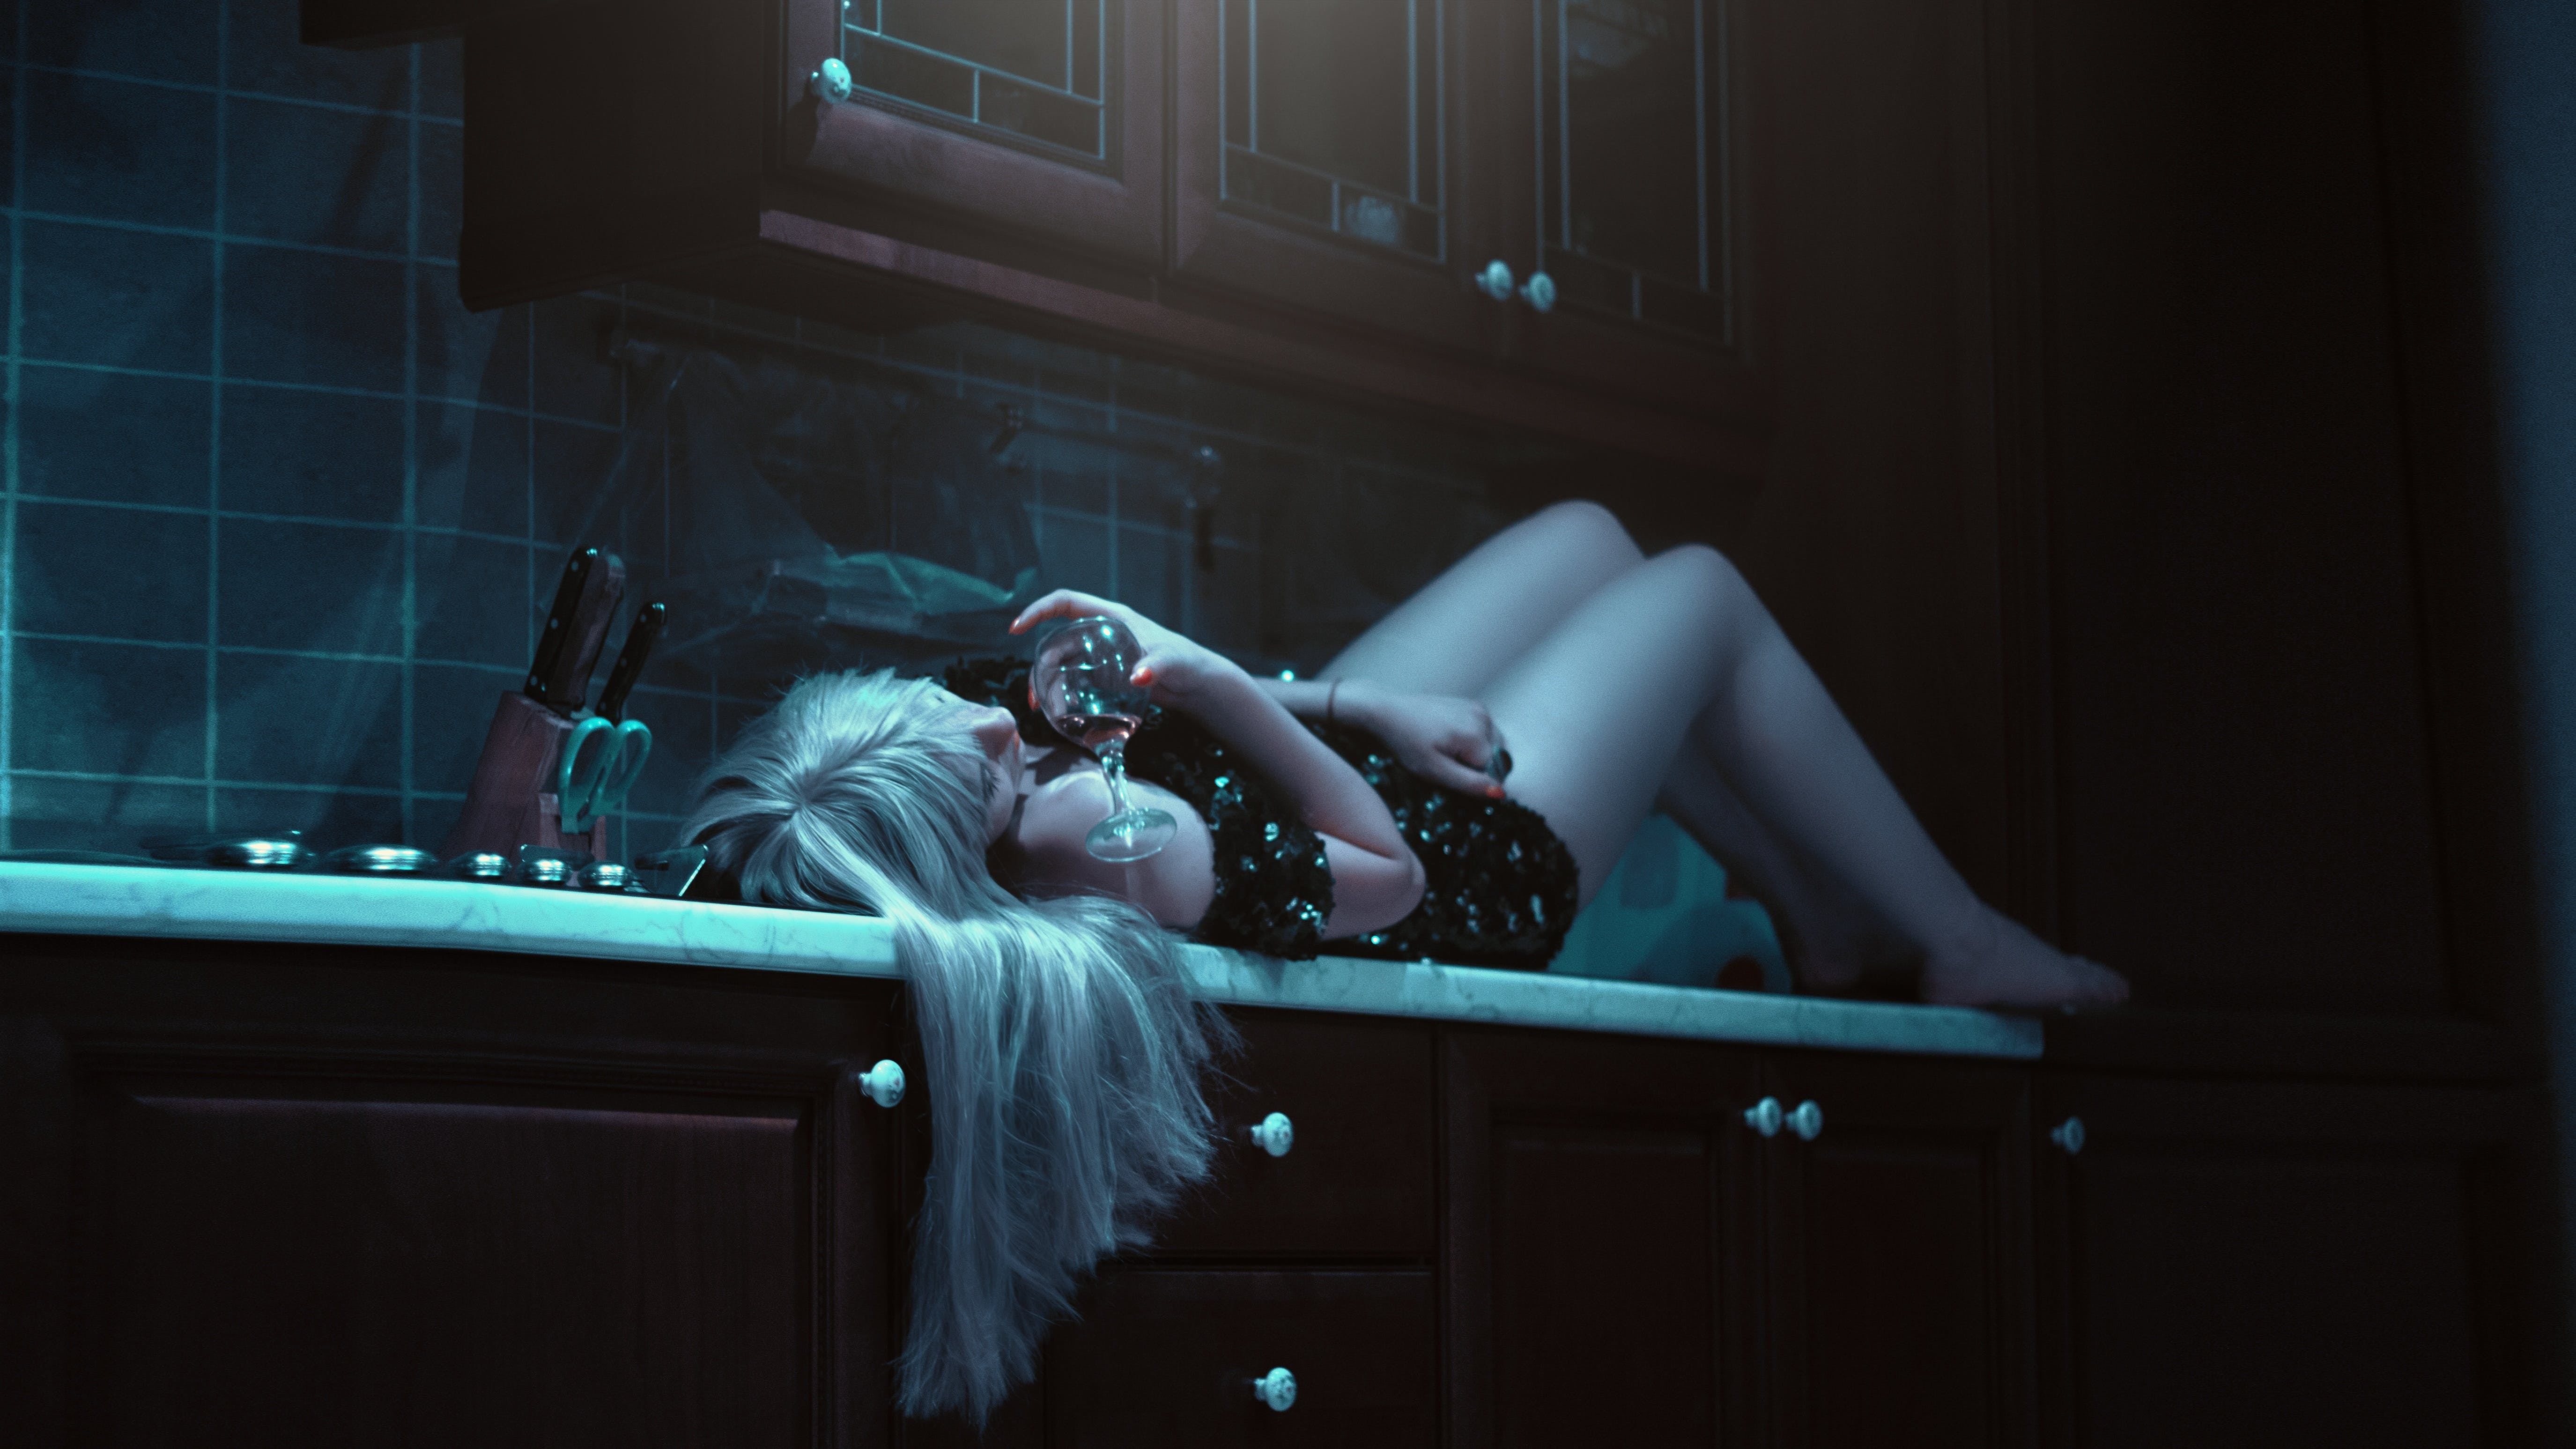 Woman Lying on Kitchen Cabinet Holding Wine Glass